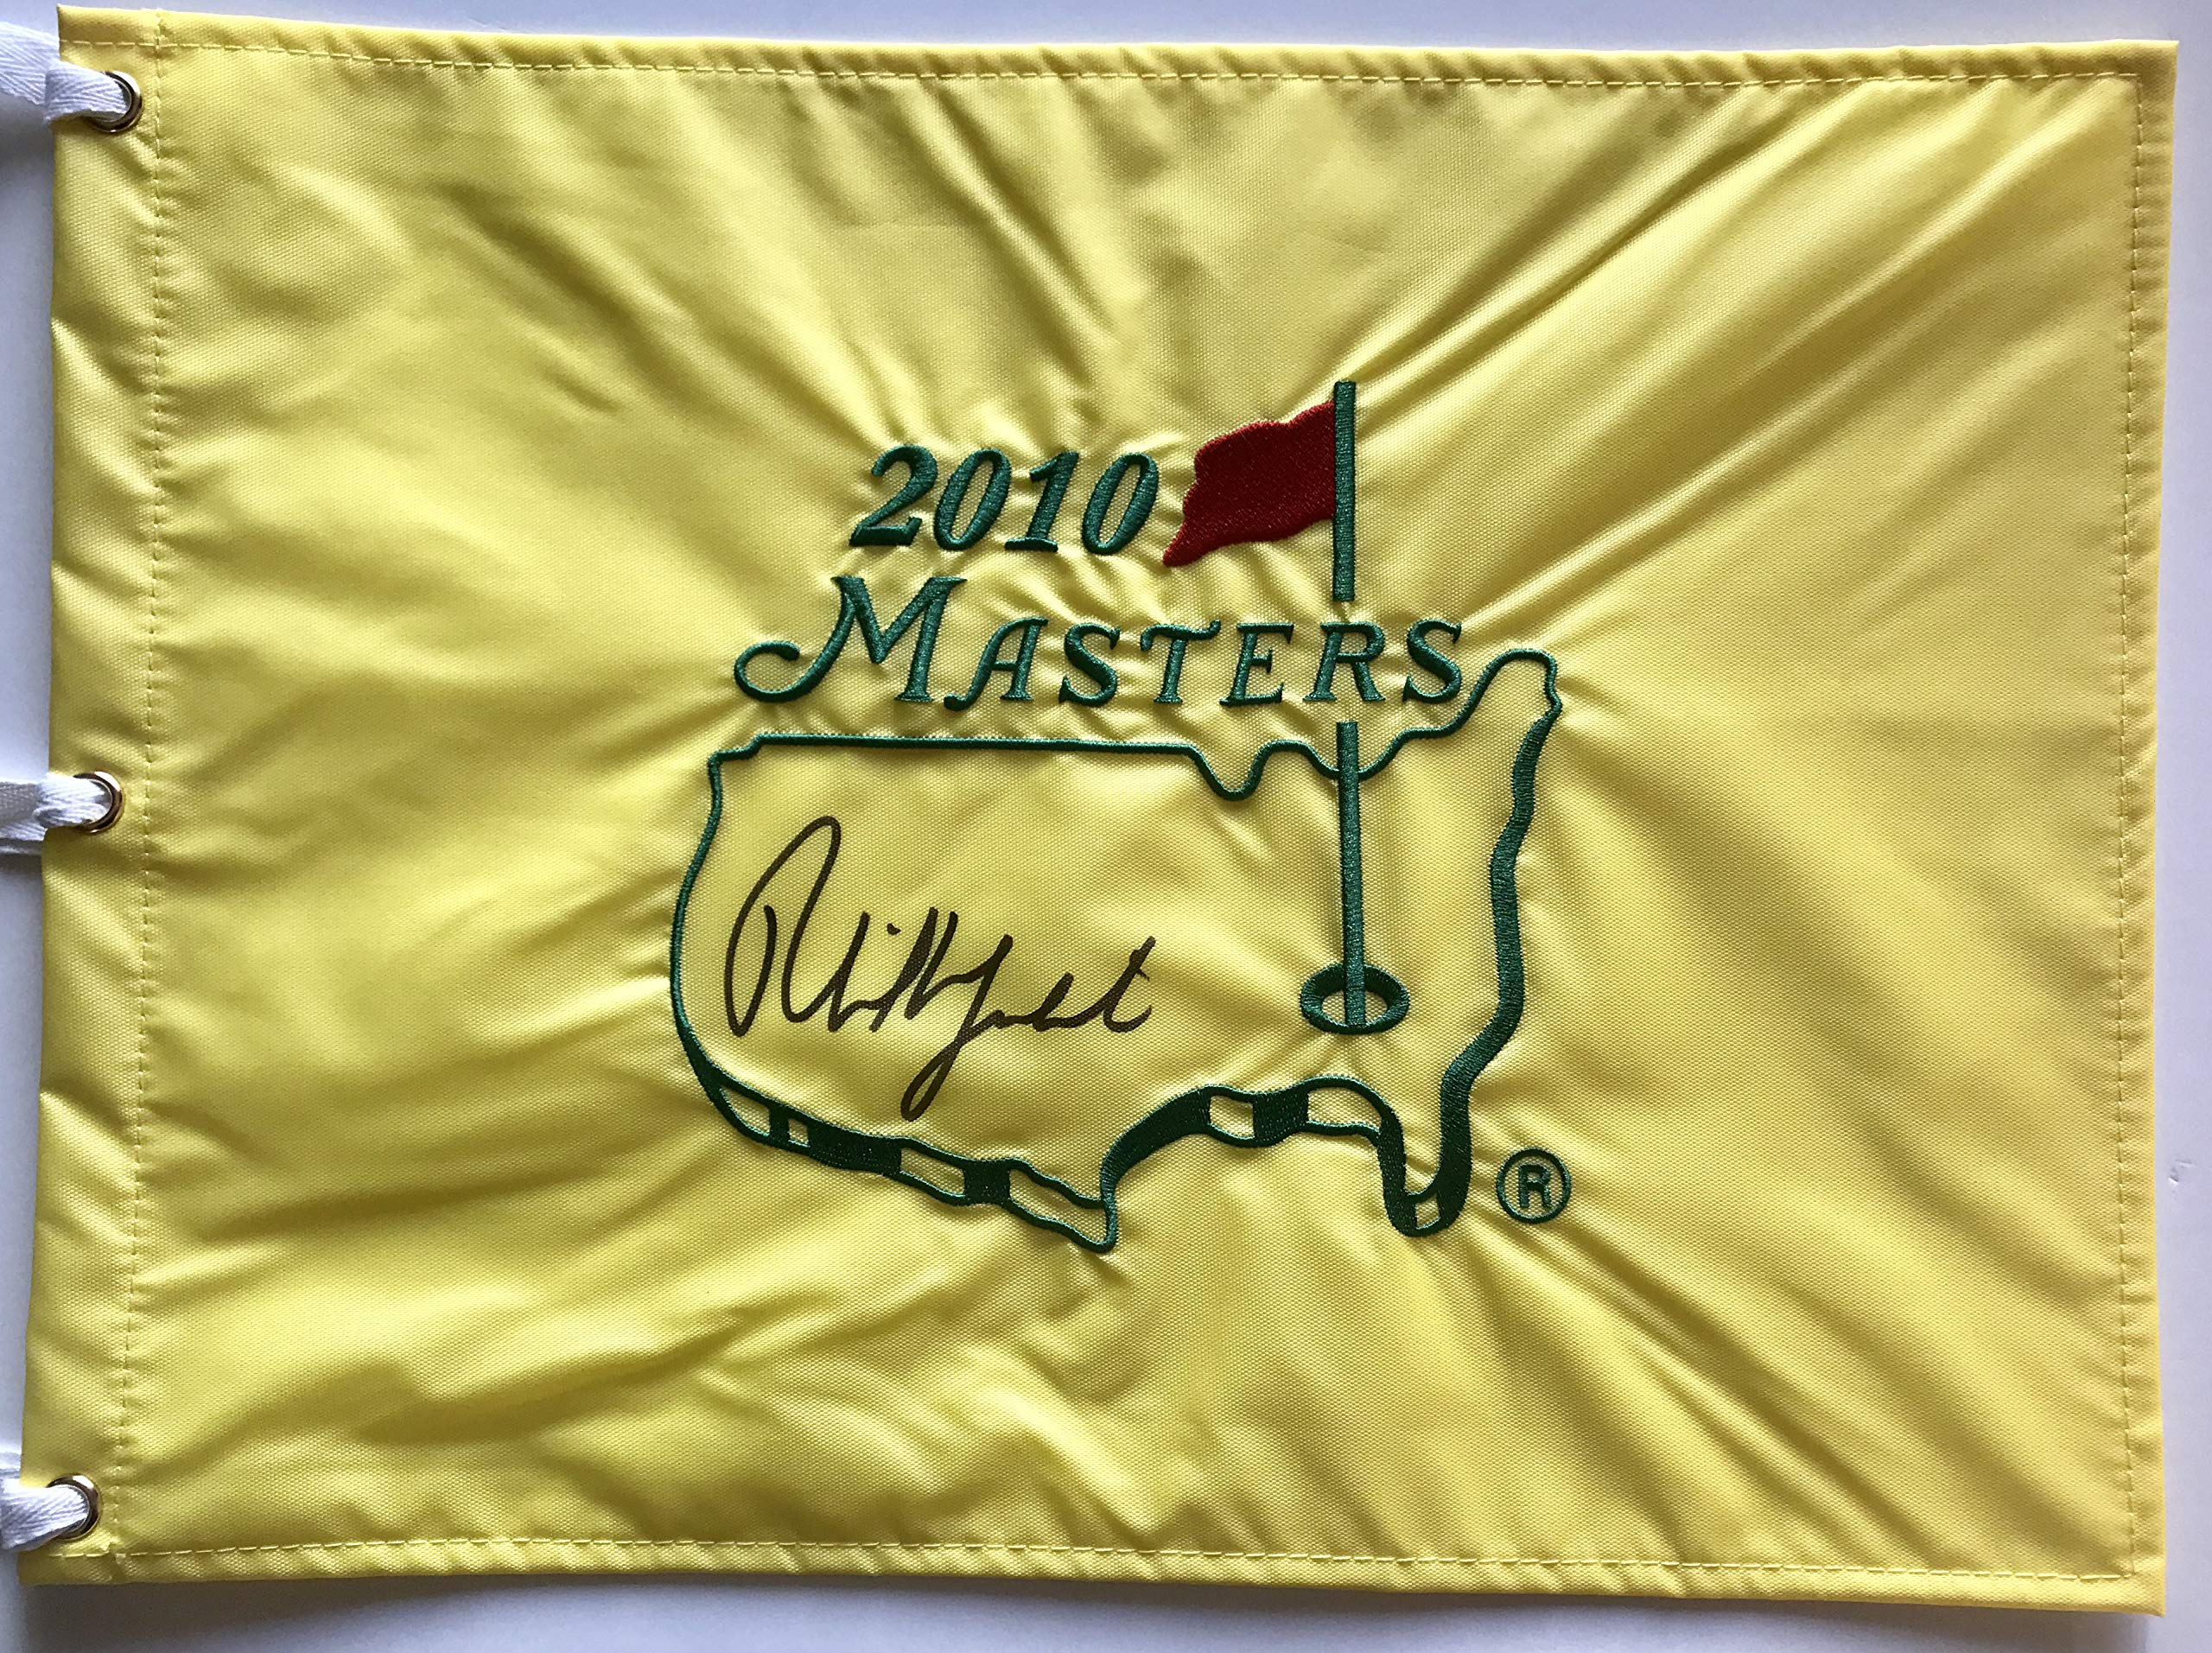 Phil Mickelson signed 2010 Masters flag 2018 ryder cup golf team usa pga